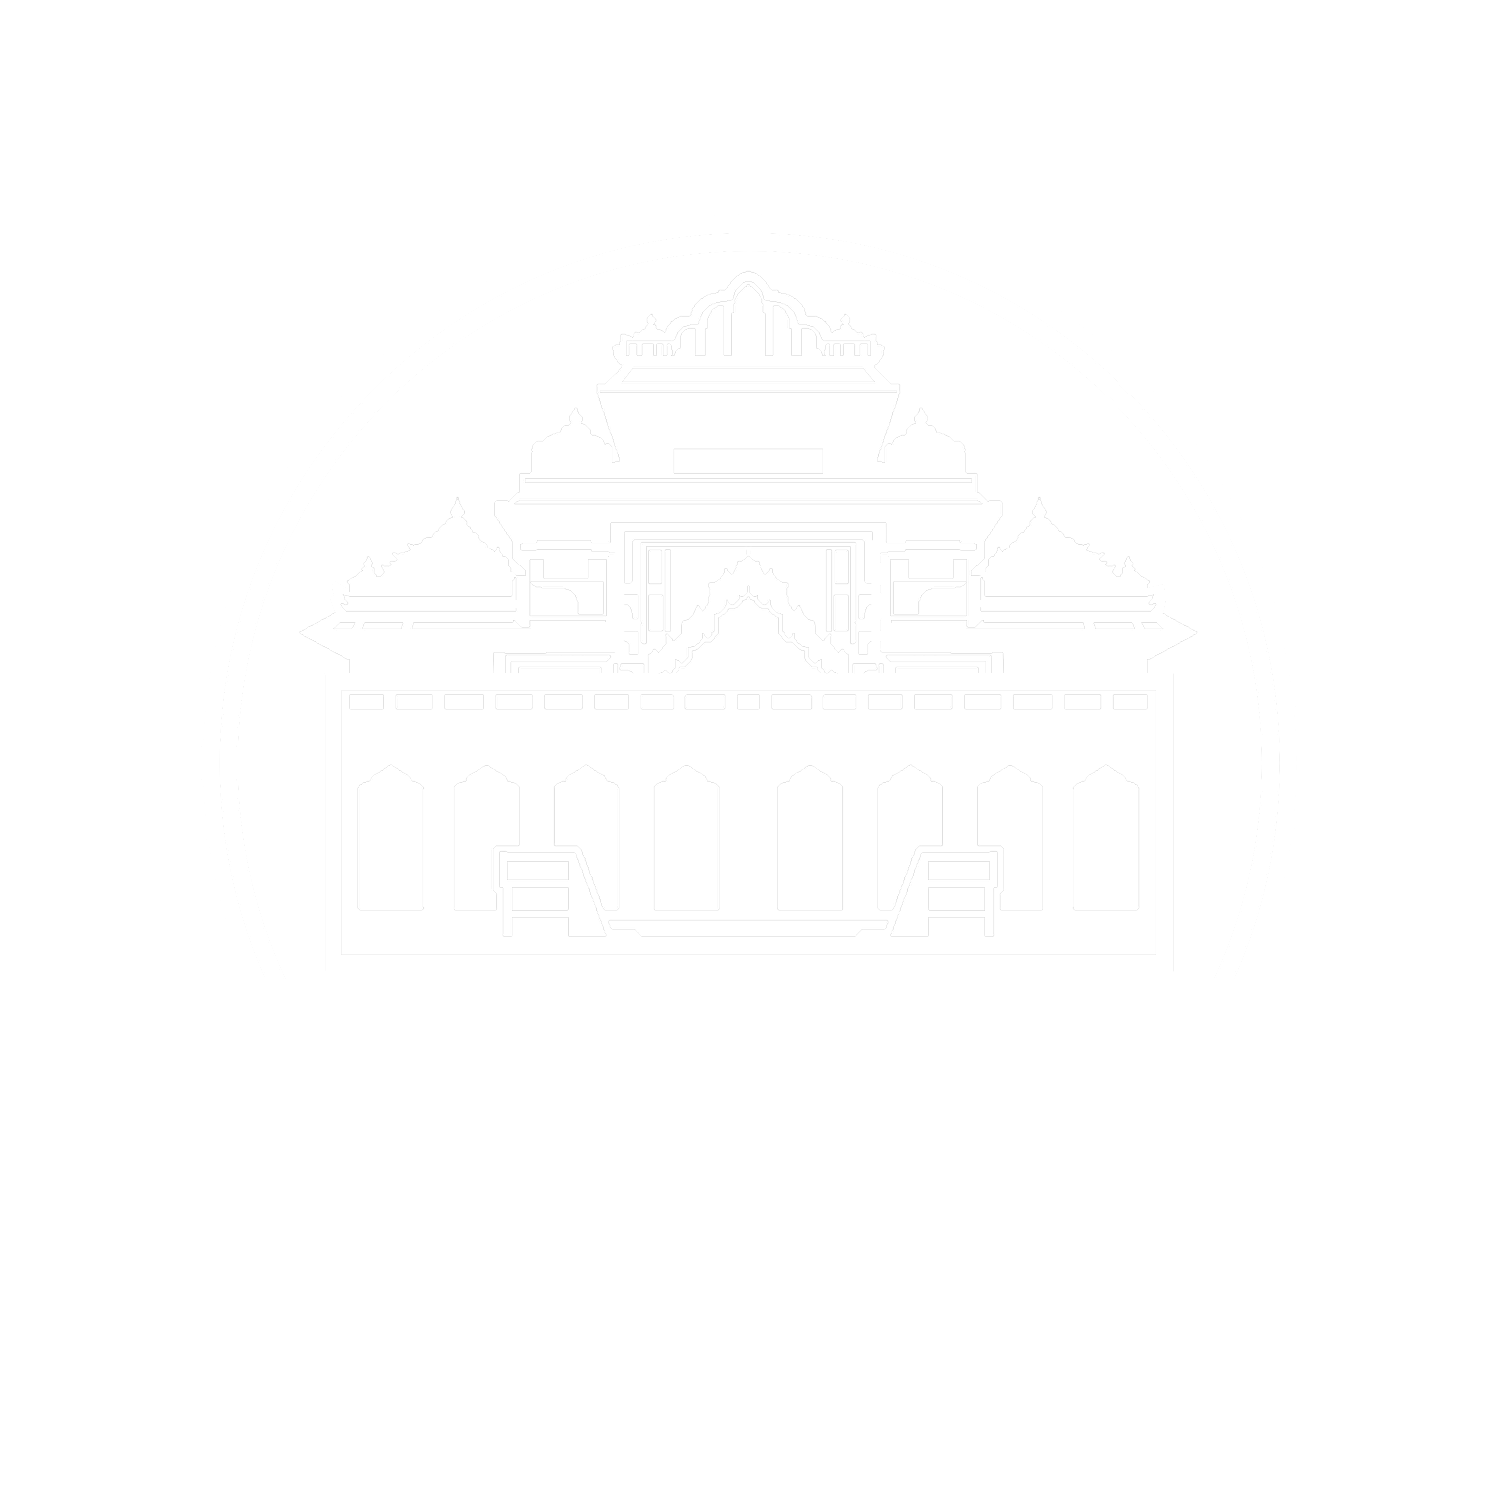 HIDDEN TEMPLE PRINTING